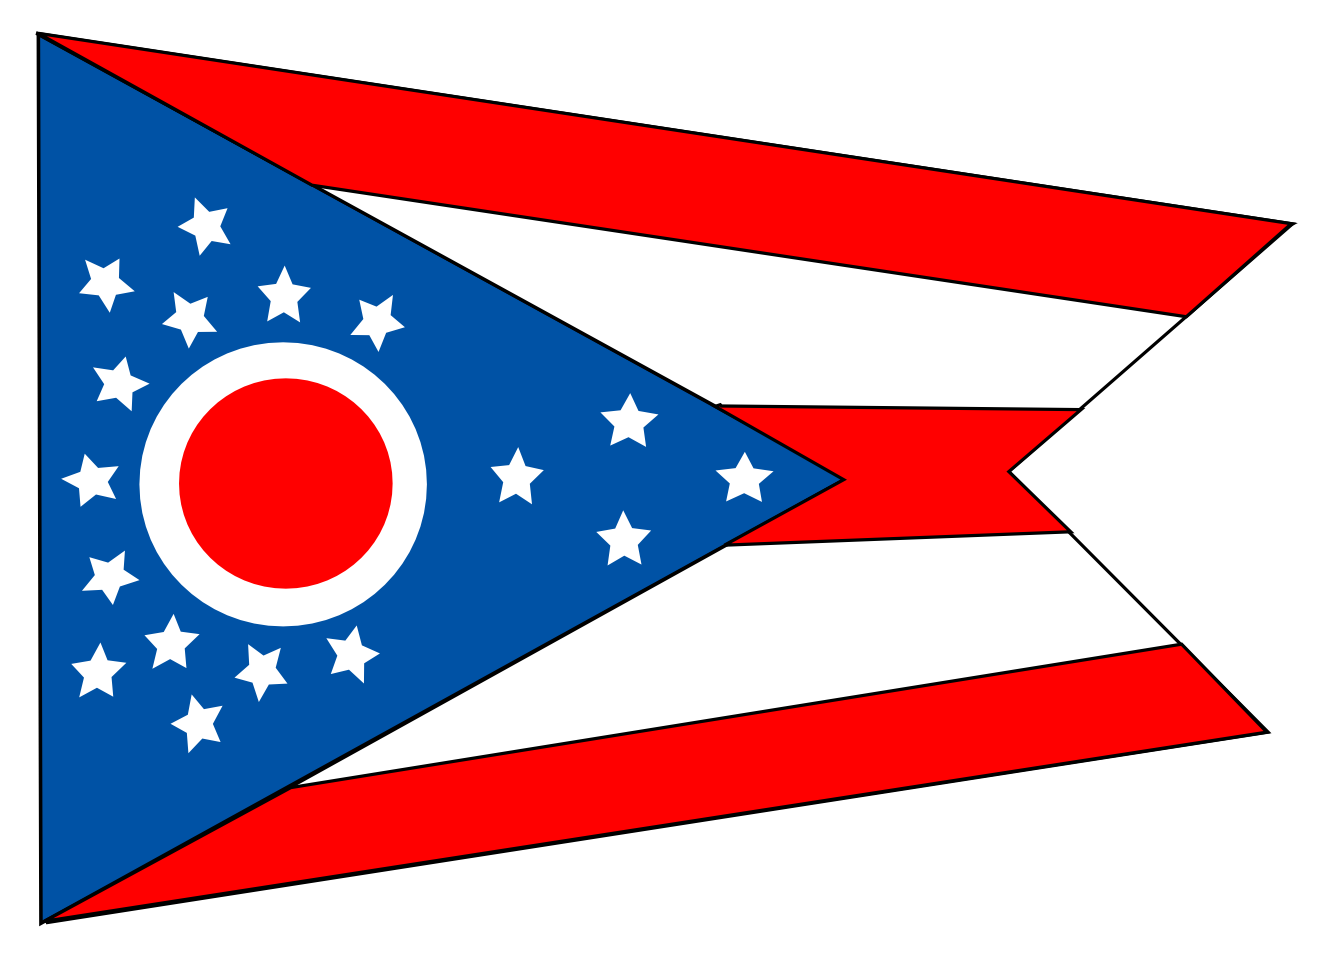 Clipart state flags banner royalty free download Ohio state flag clipart - Cliparting.com banner royalty free download